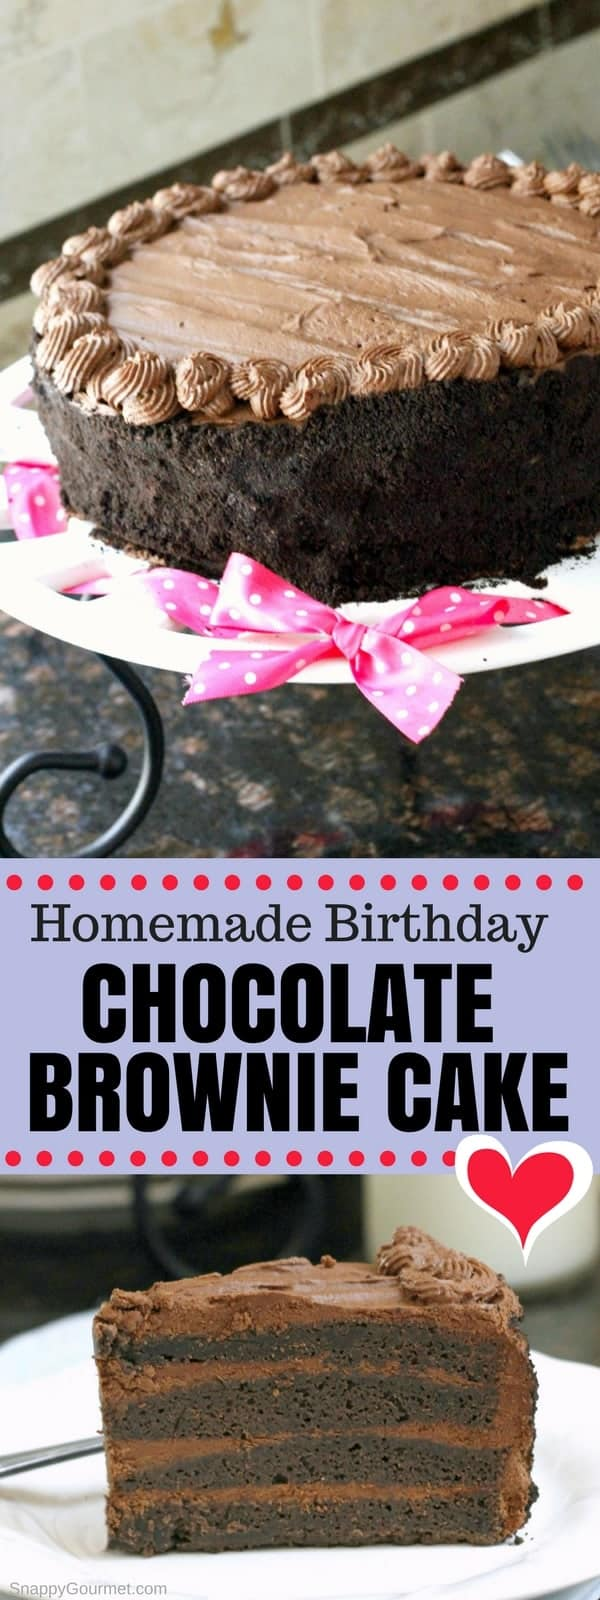 Homemade Birthday Chocolate Brownie Cake Recipe, an easy super moist from scratch layered chocolate brownie cake perfect for birthdays and special occasions! #SnappyGourmet #Brownie #Cake #Dessert #Recipe #Birthday #Chocolate #Homemade #DarkChocolate #HowTo #FromScratch #Moist #Layered #Easy #Oreo #Decorated